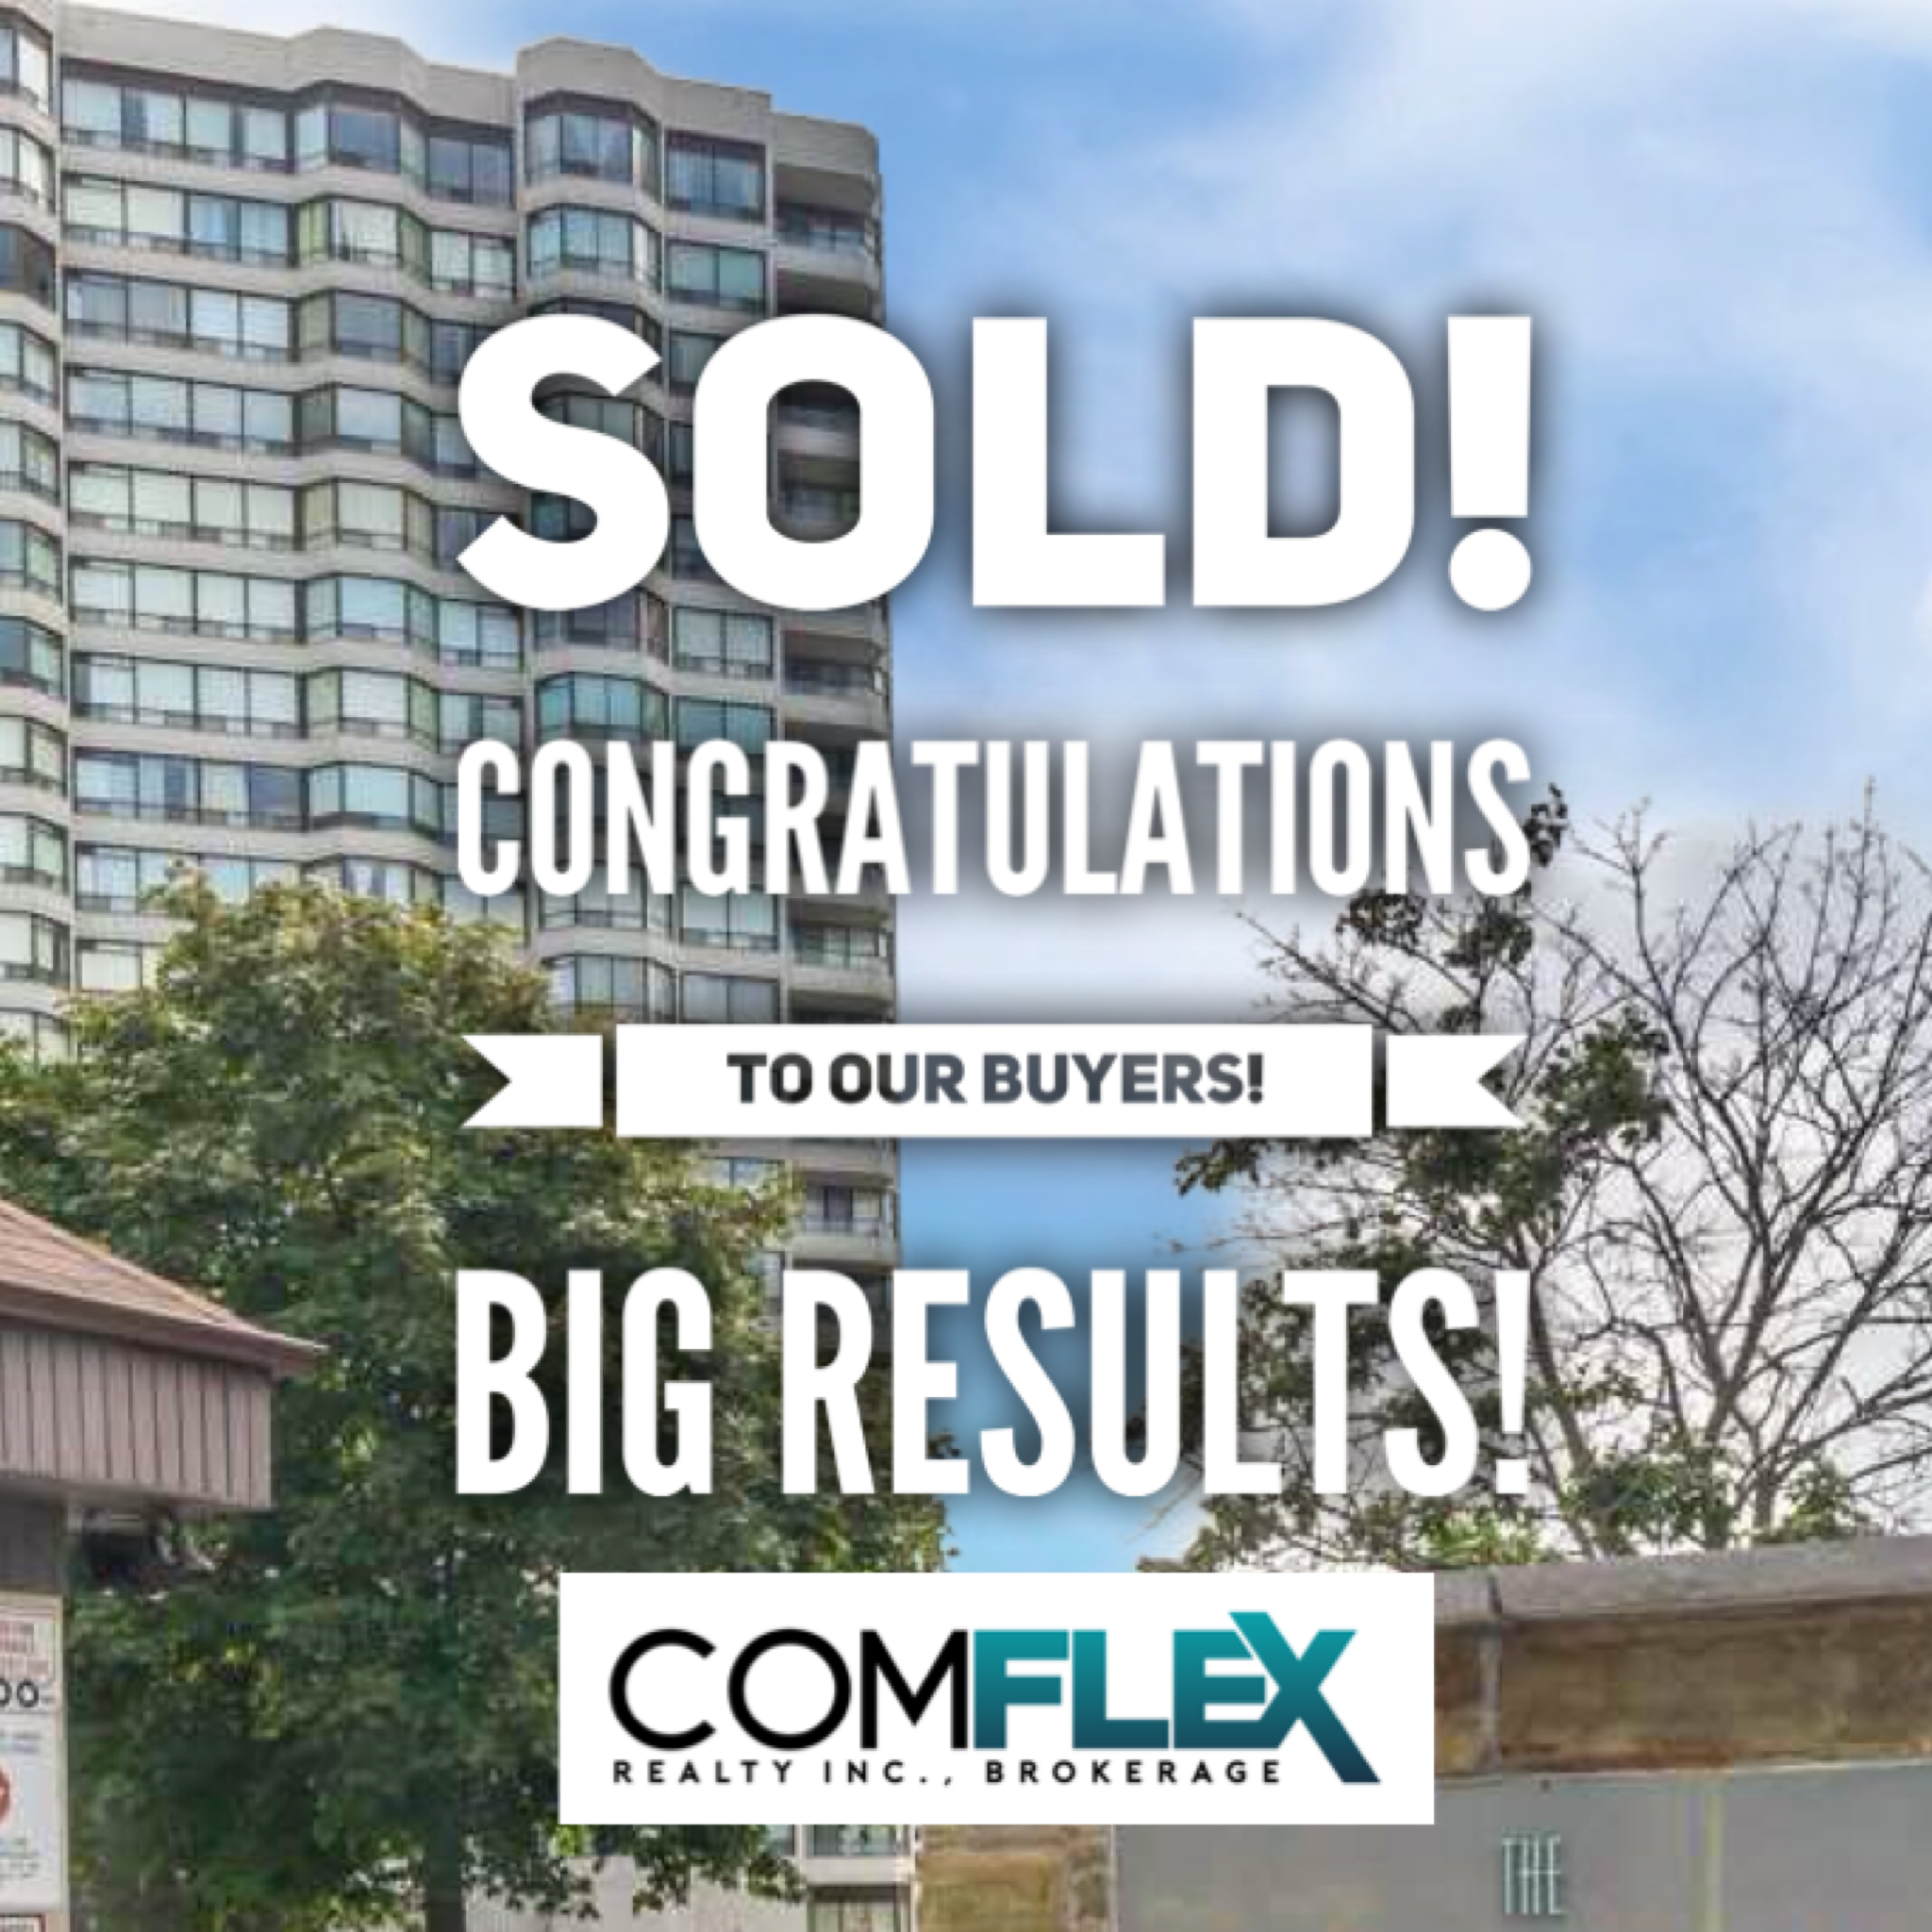 SOLD! CONGRATULATIONS TO OUR CLIENTS!